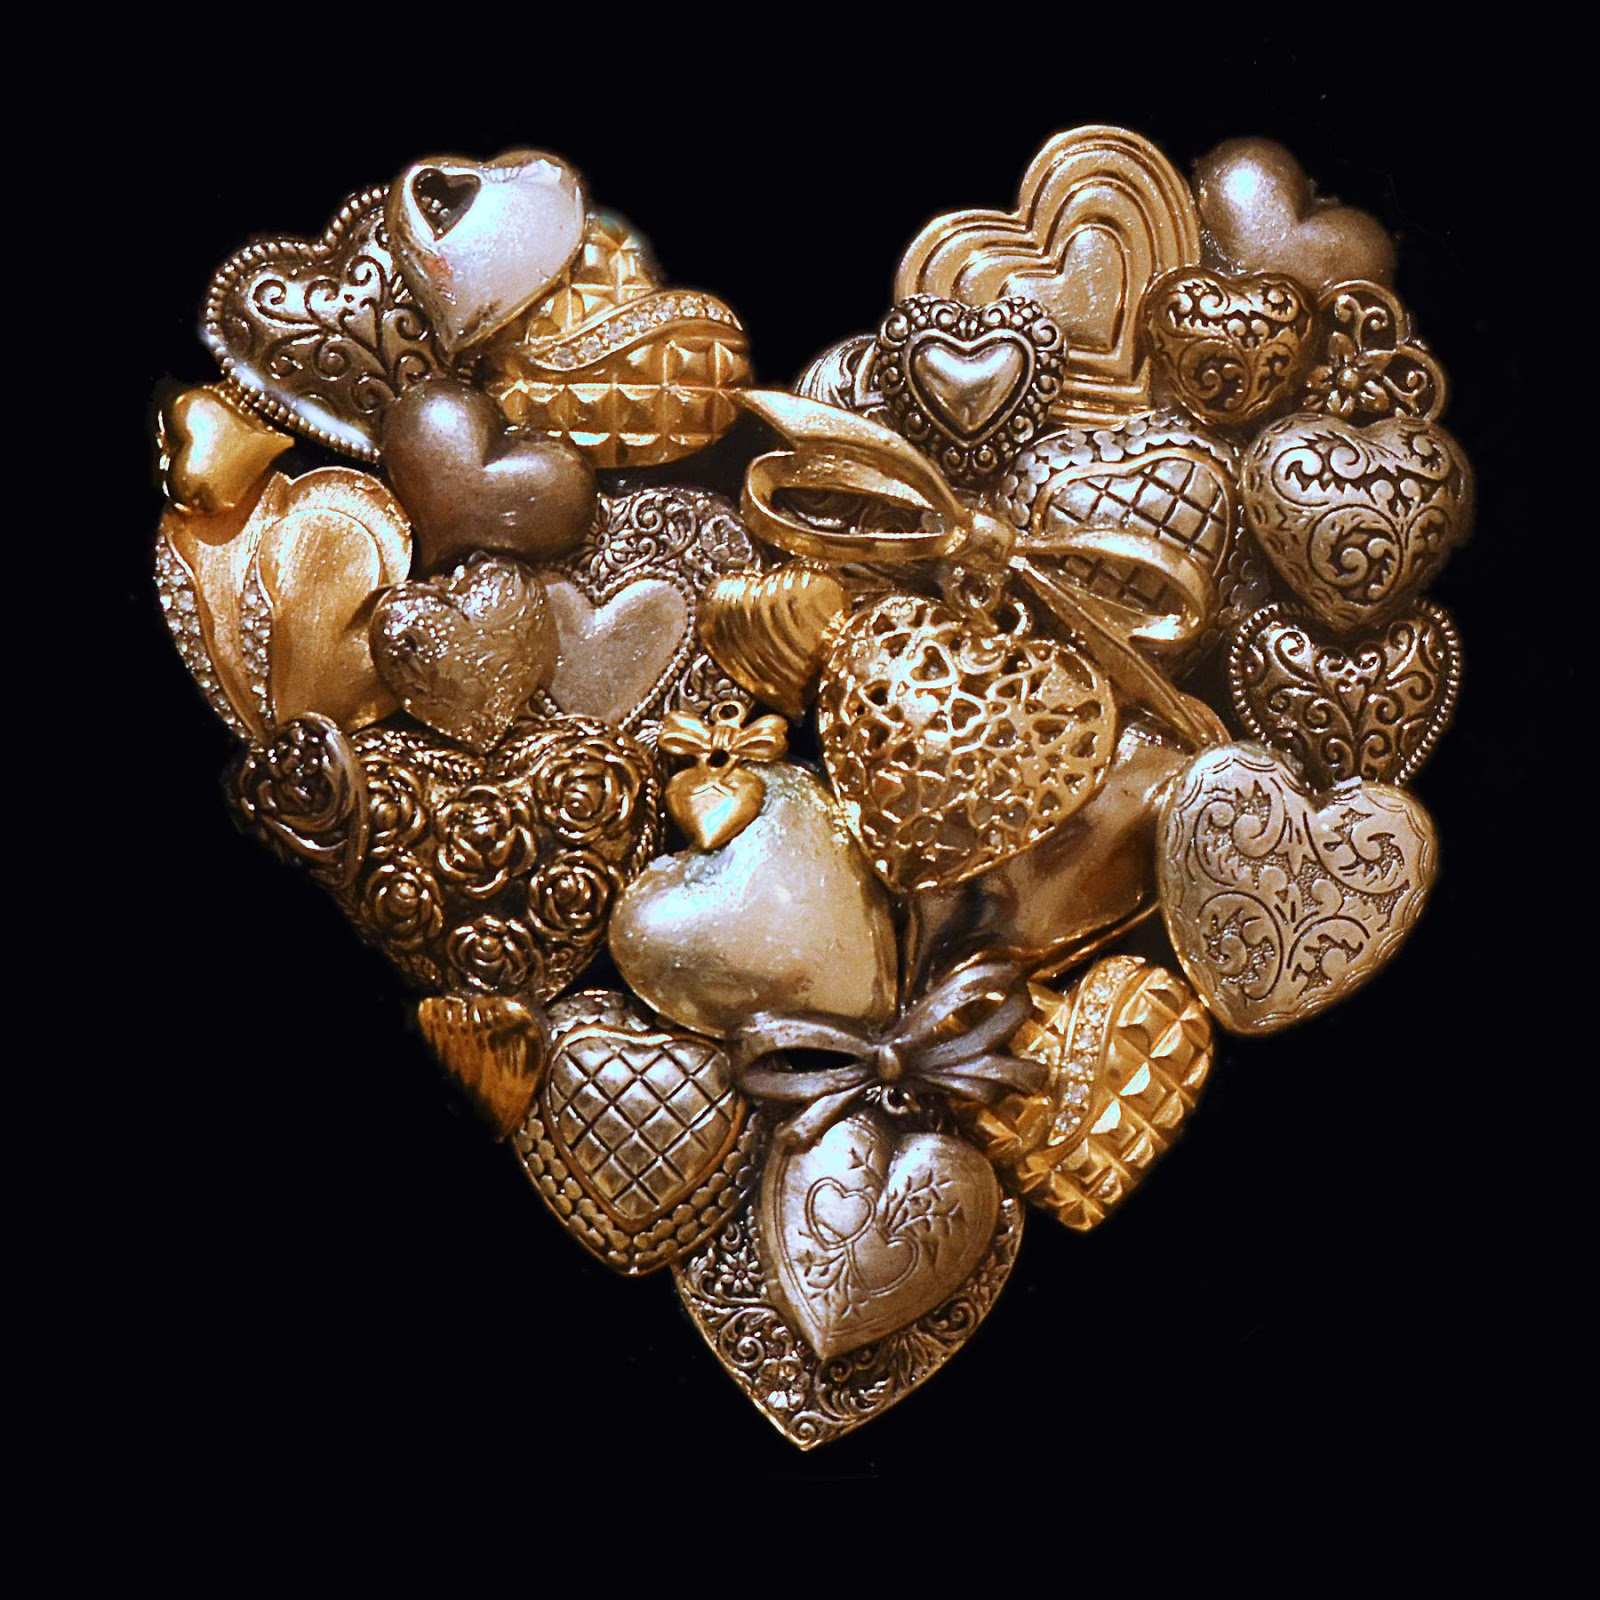 Silver and GOld Heart by Jeanne Selep